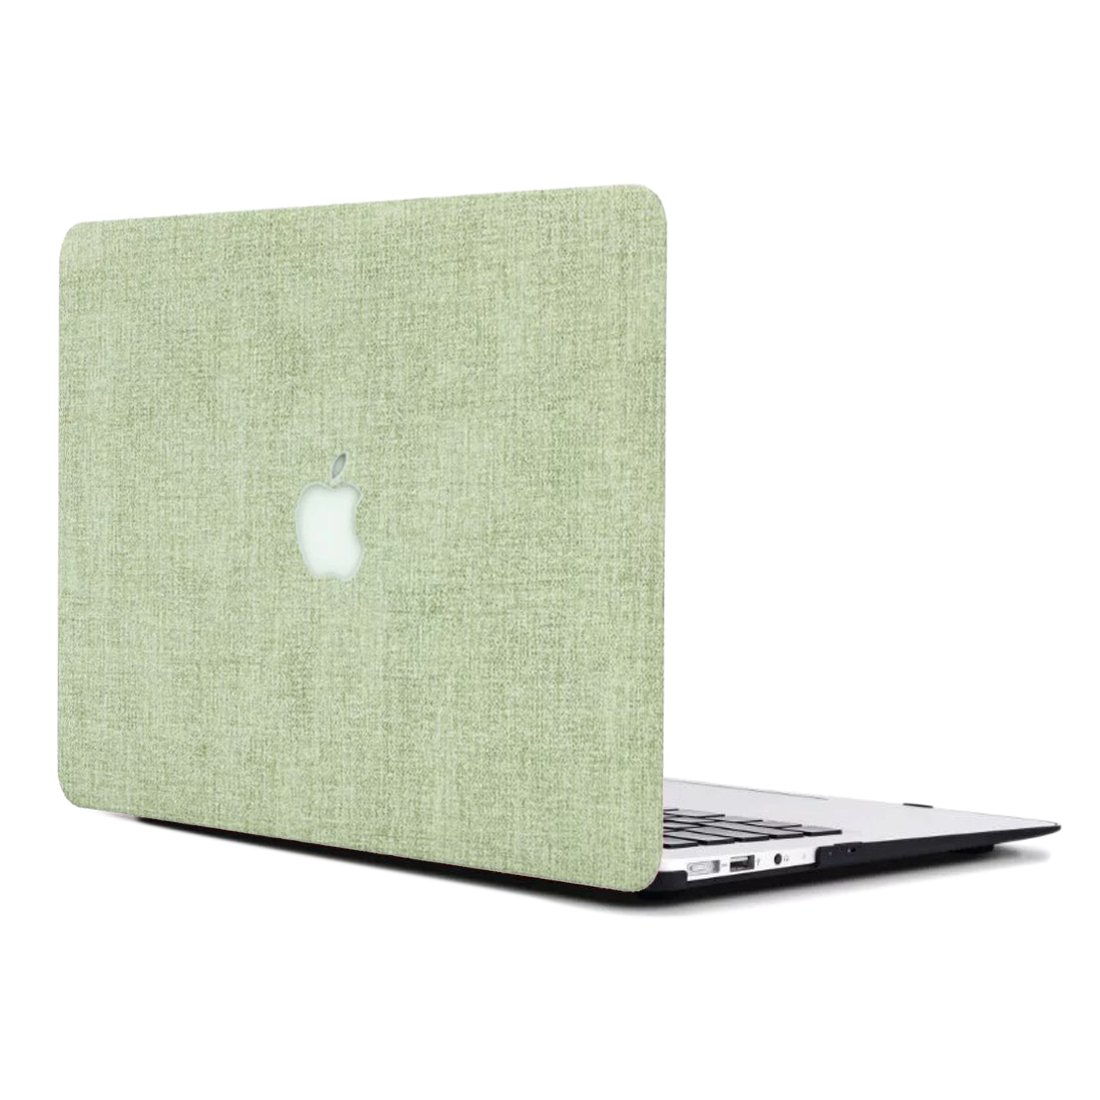 L2W Funda Apple Macbook Portatil Air Carcasa Rígida Protector de Plástico Cubierta para MacBook Air 13 Pulgadas [Modelo:A1466/A1369] Incluso ...